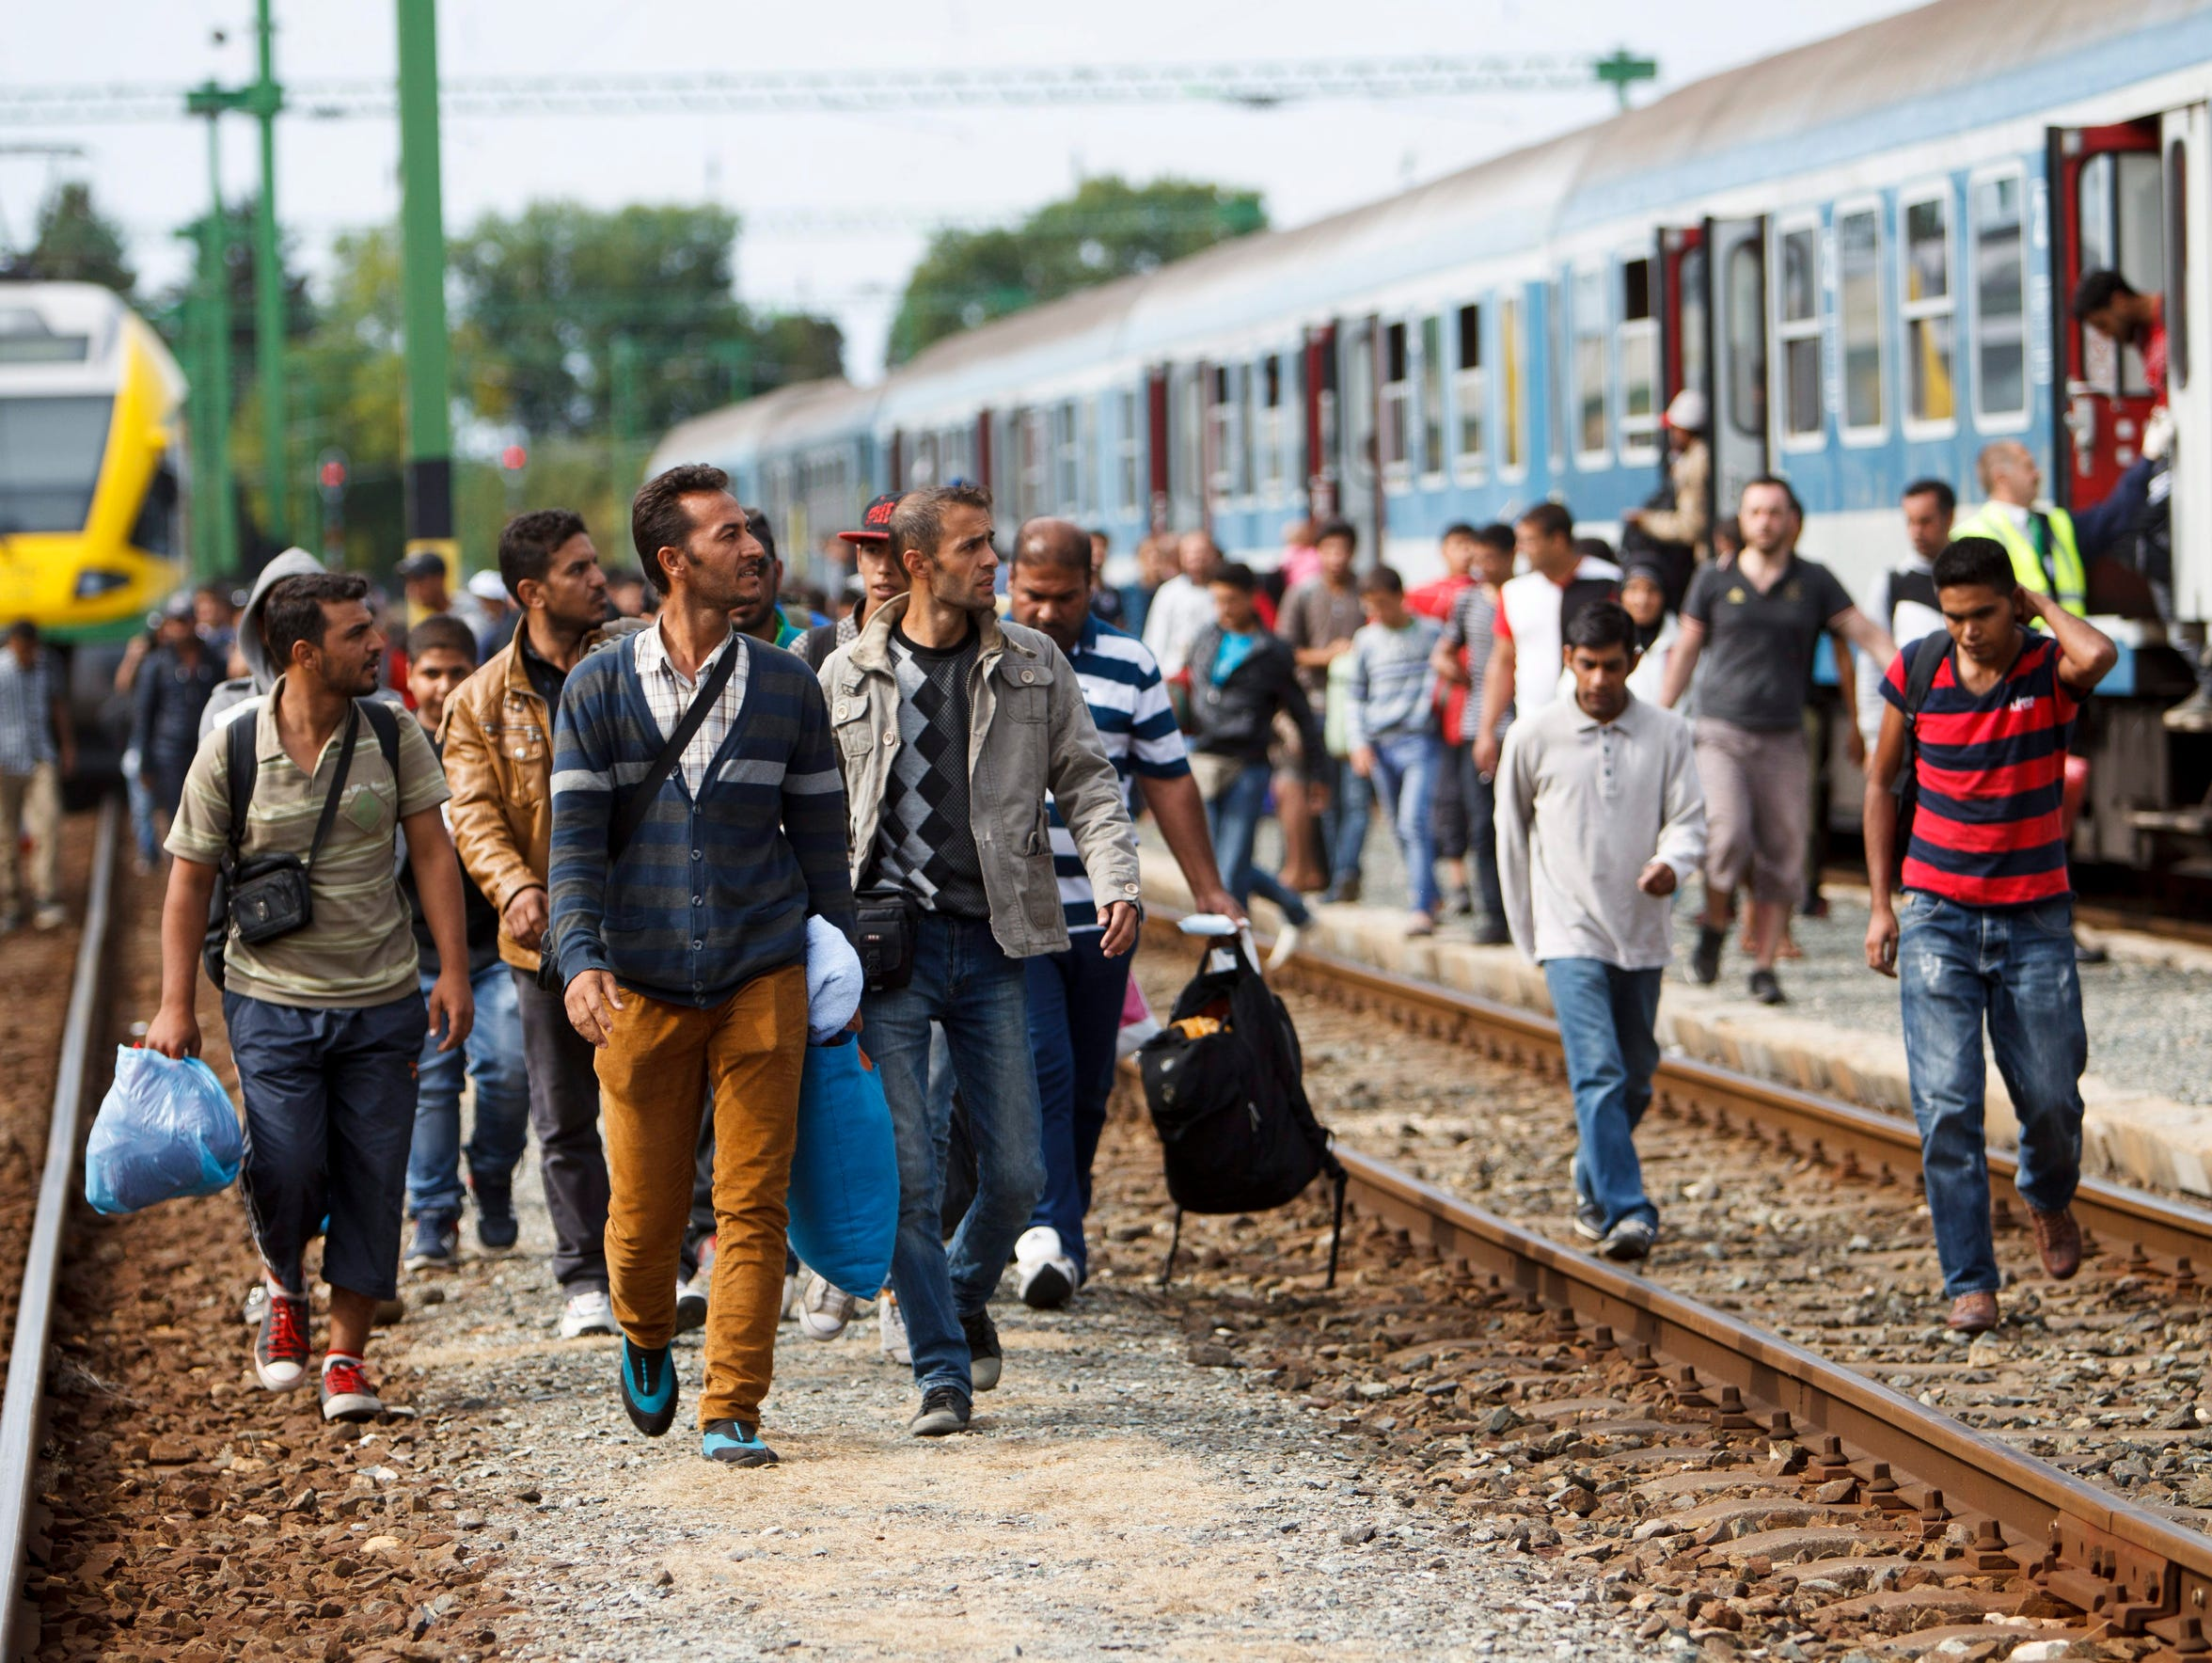 Migrants and refugees arrive at the railway station